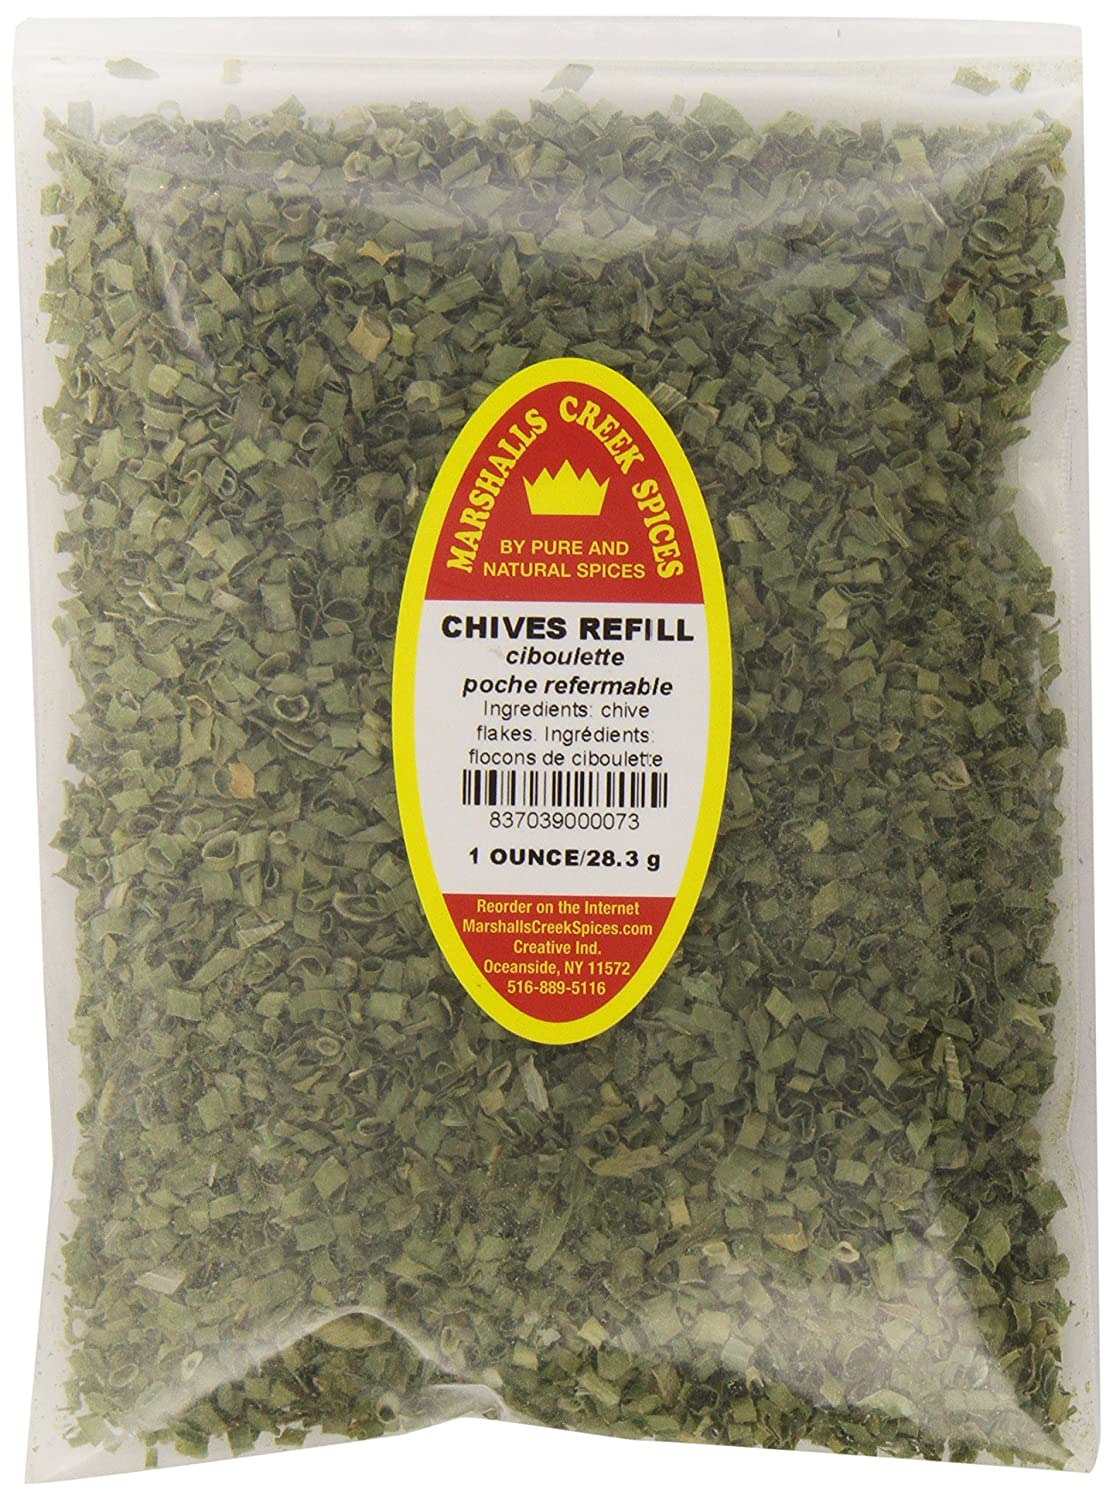 CHIVES REFILL - FRESHLY PACKED IN Elegant SEALED POUCHES GRADE Translated FOOD HEAT